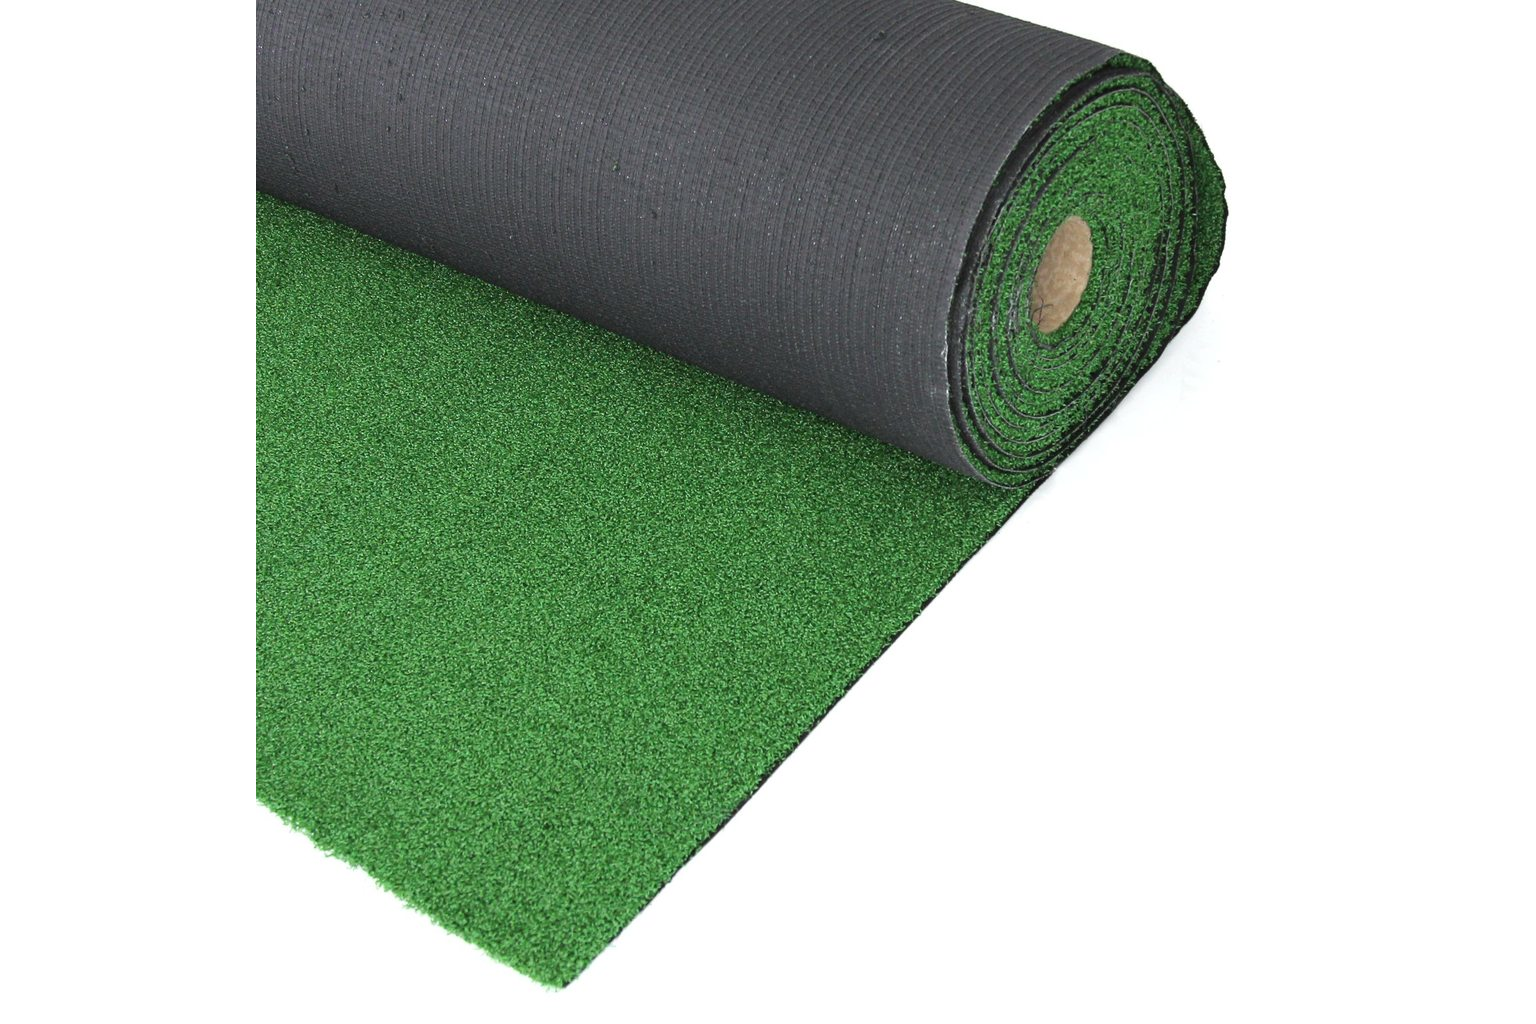 Roll of Artificial Grass